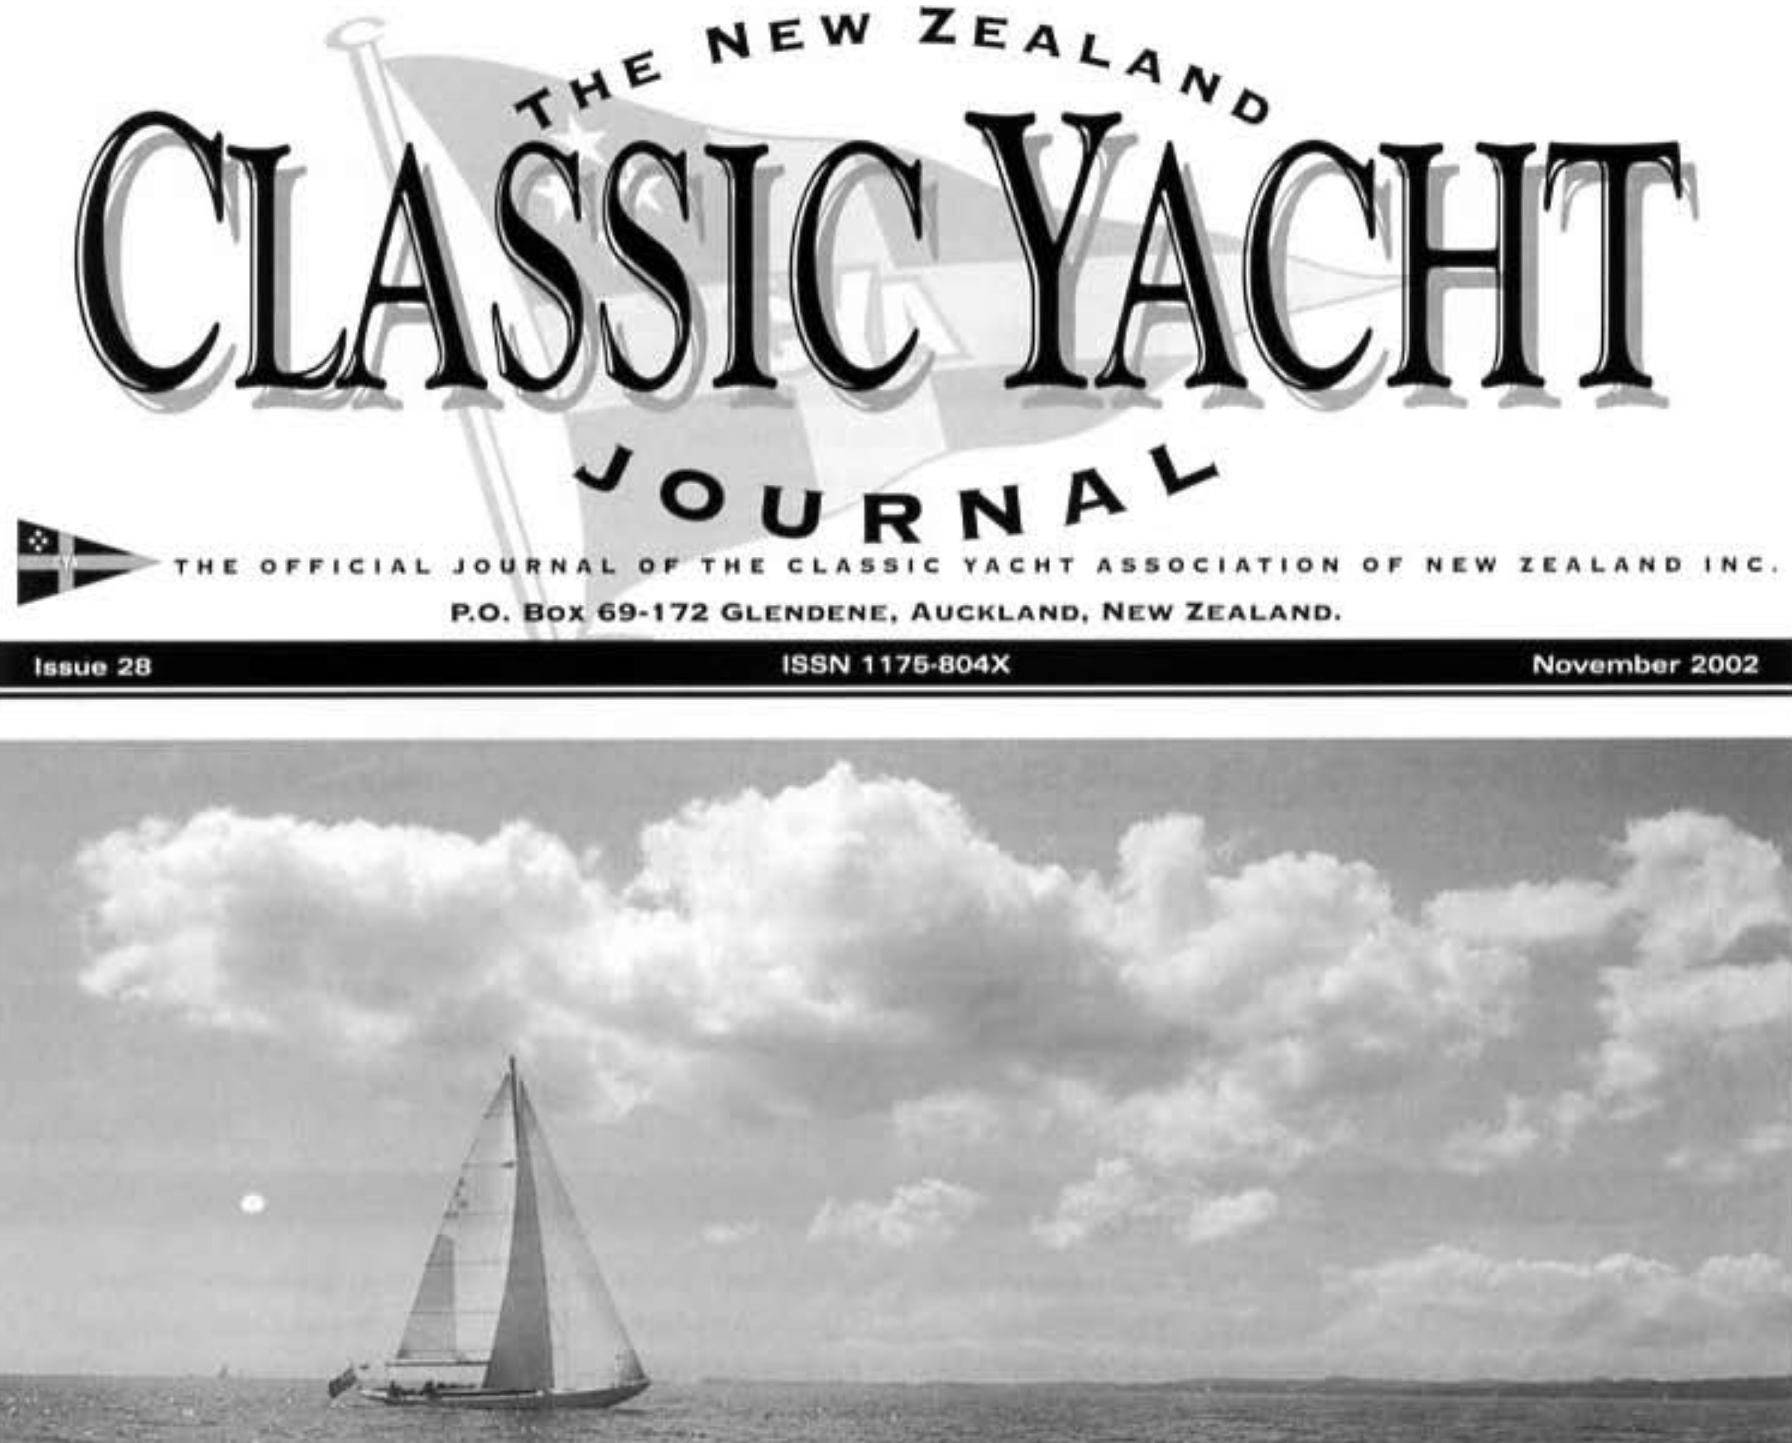 The New Zealand Classic Yacht Journal